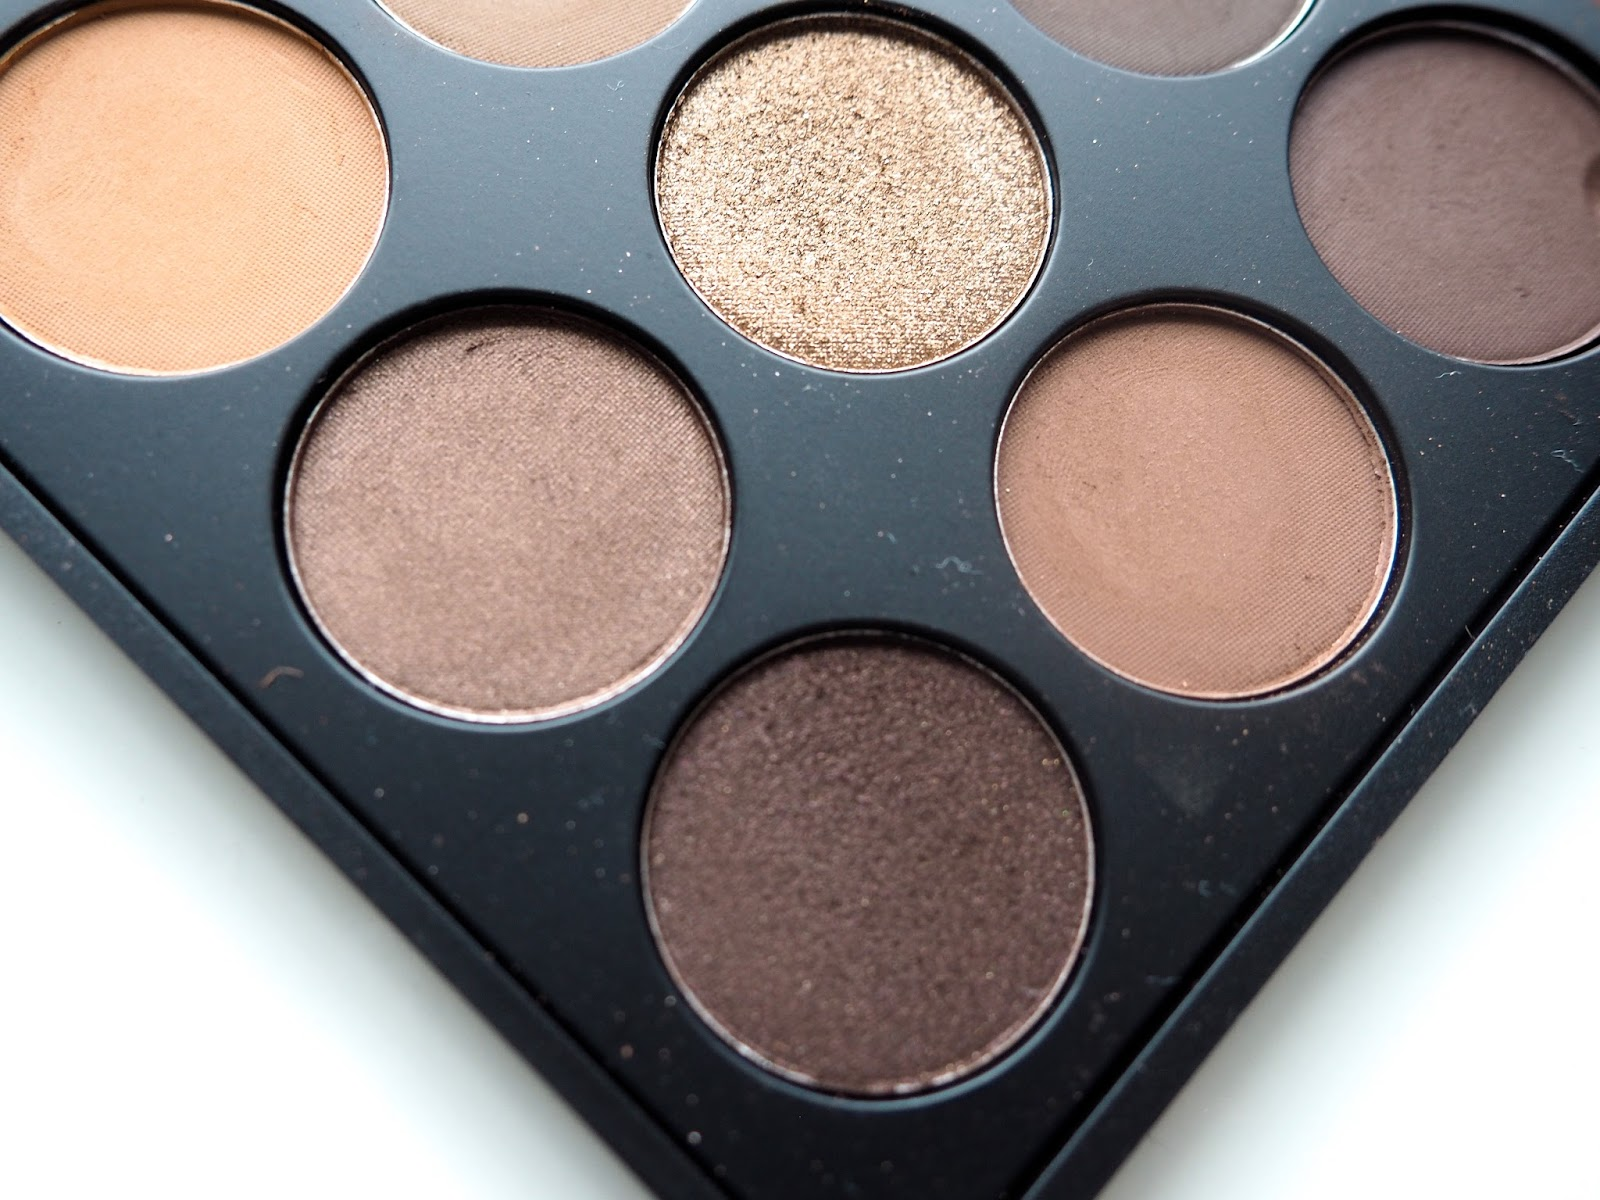 Morphe 35O Eyeshadow Palette It's Cultured Blog Post